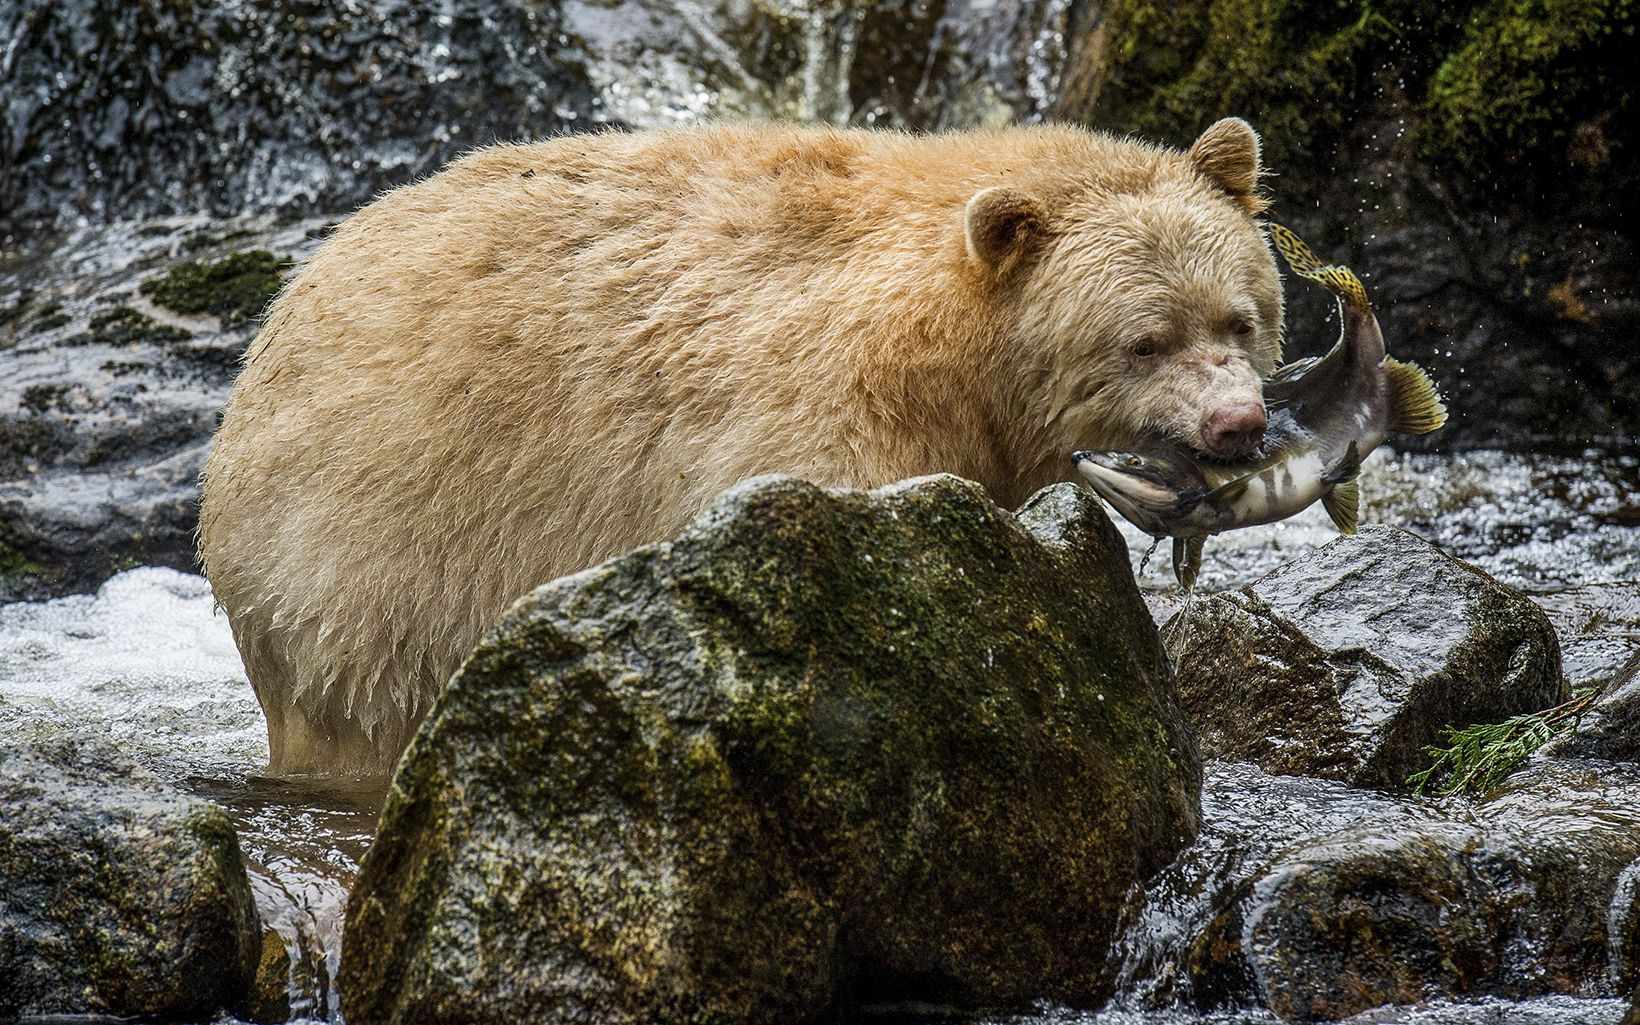 a yellowish white bear catches a fish